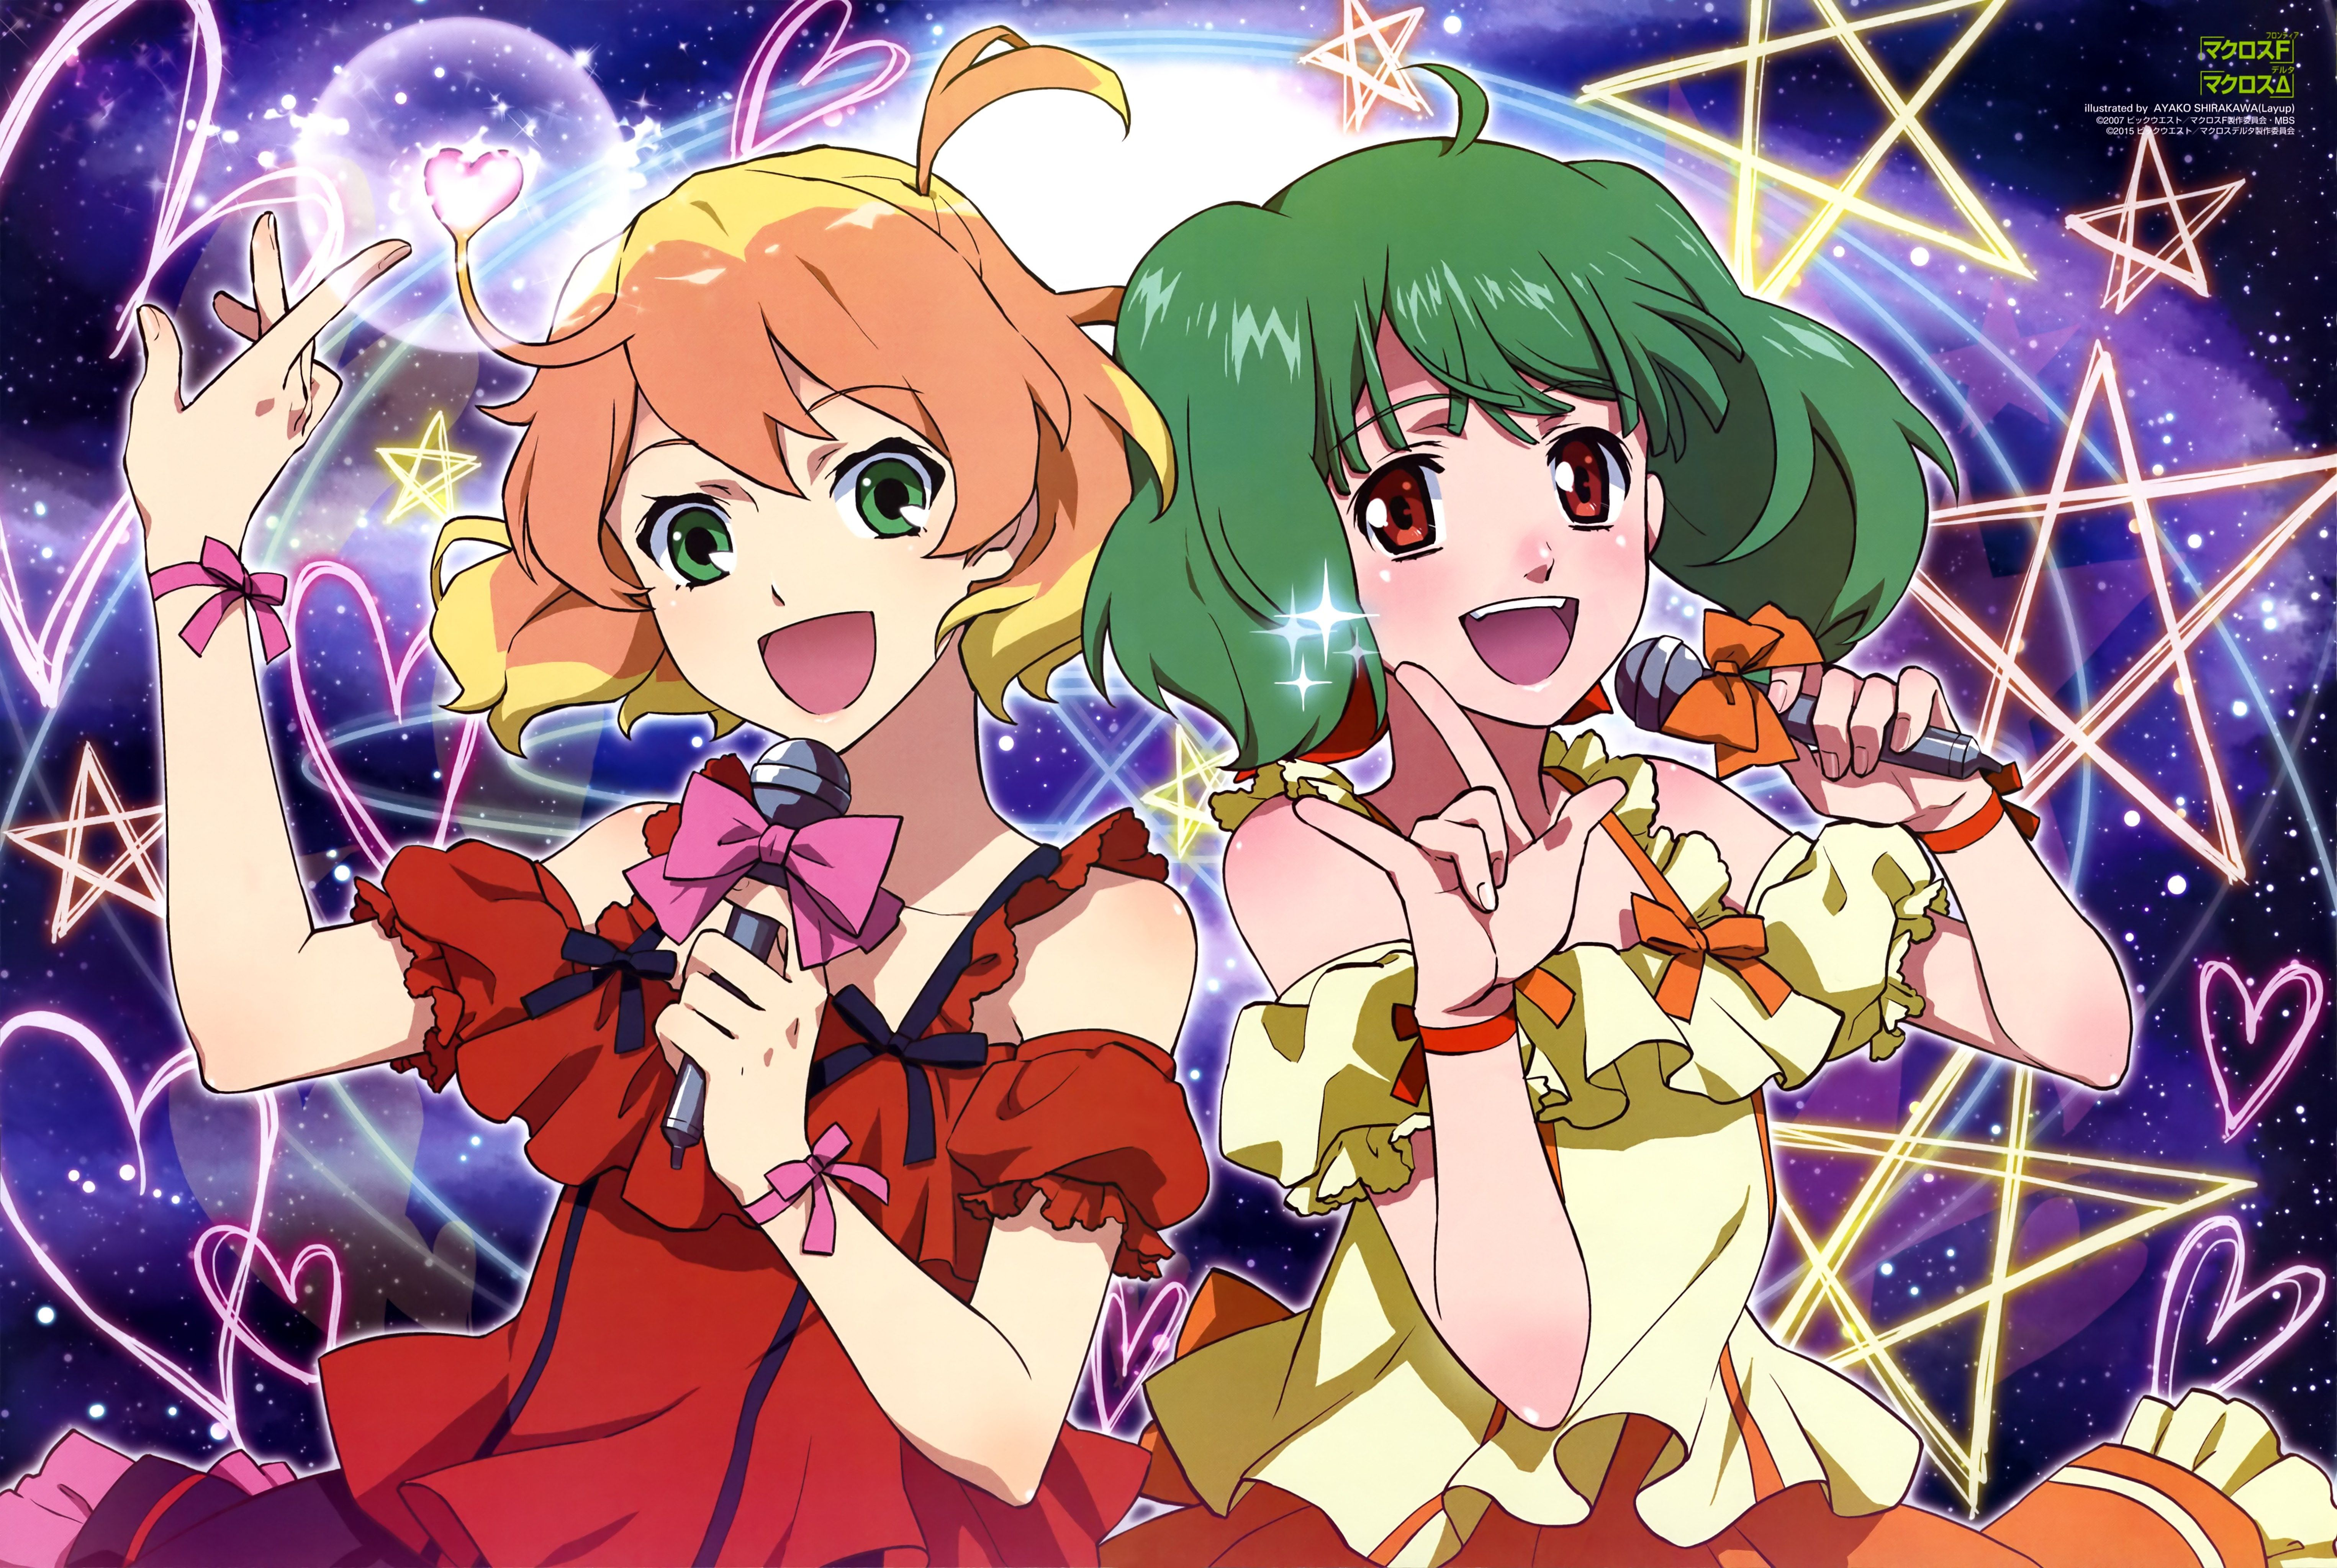 Macross Frontier Free For Desktop 6101x4093 構図 イラスト 要塞